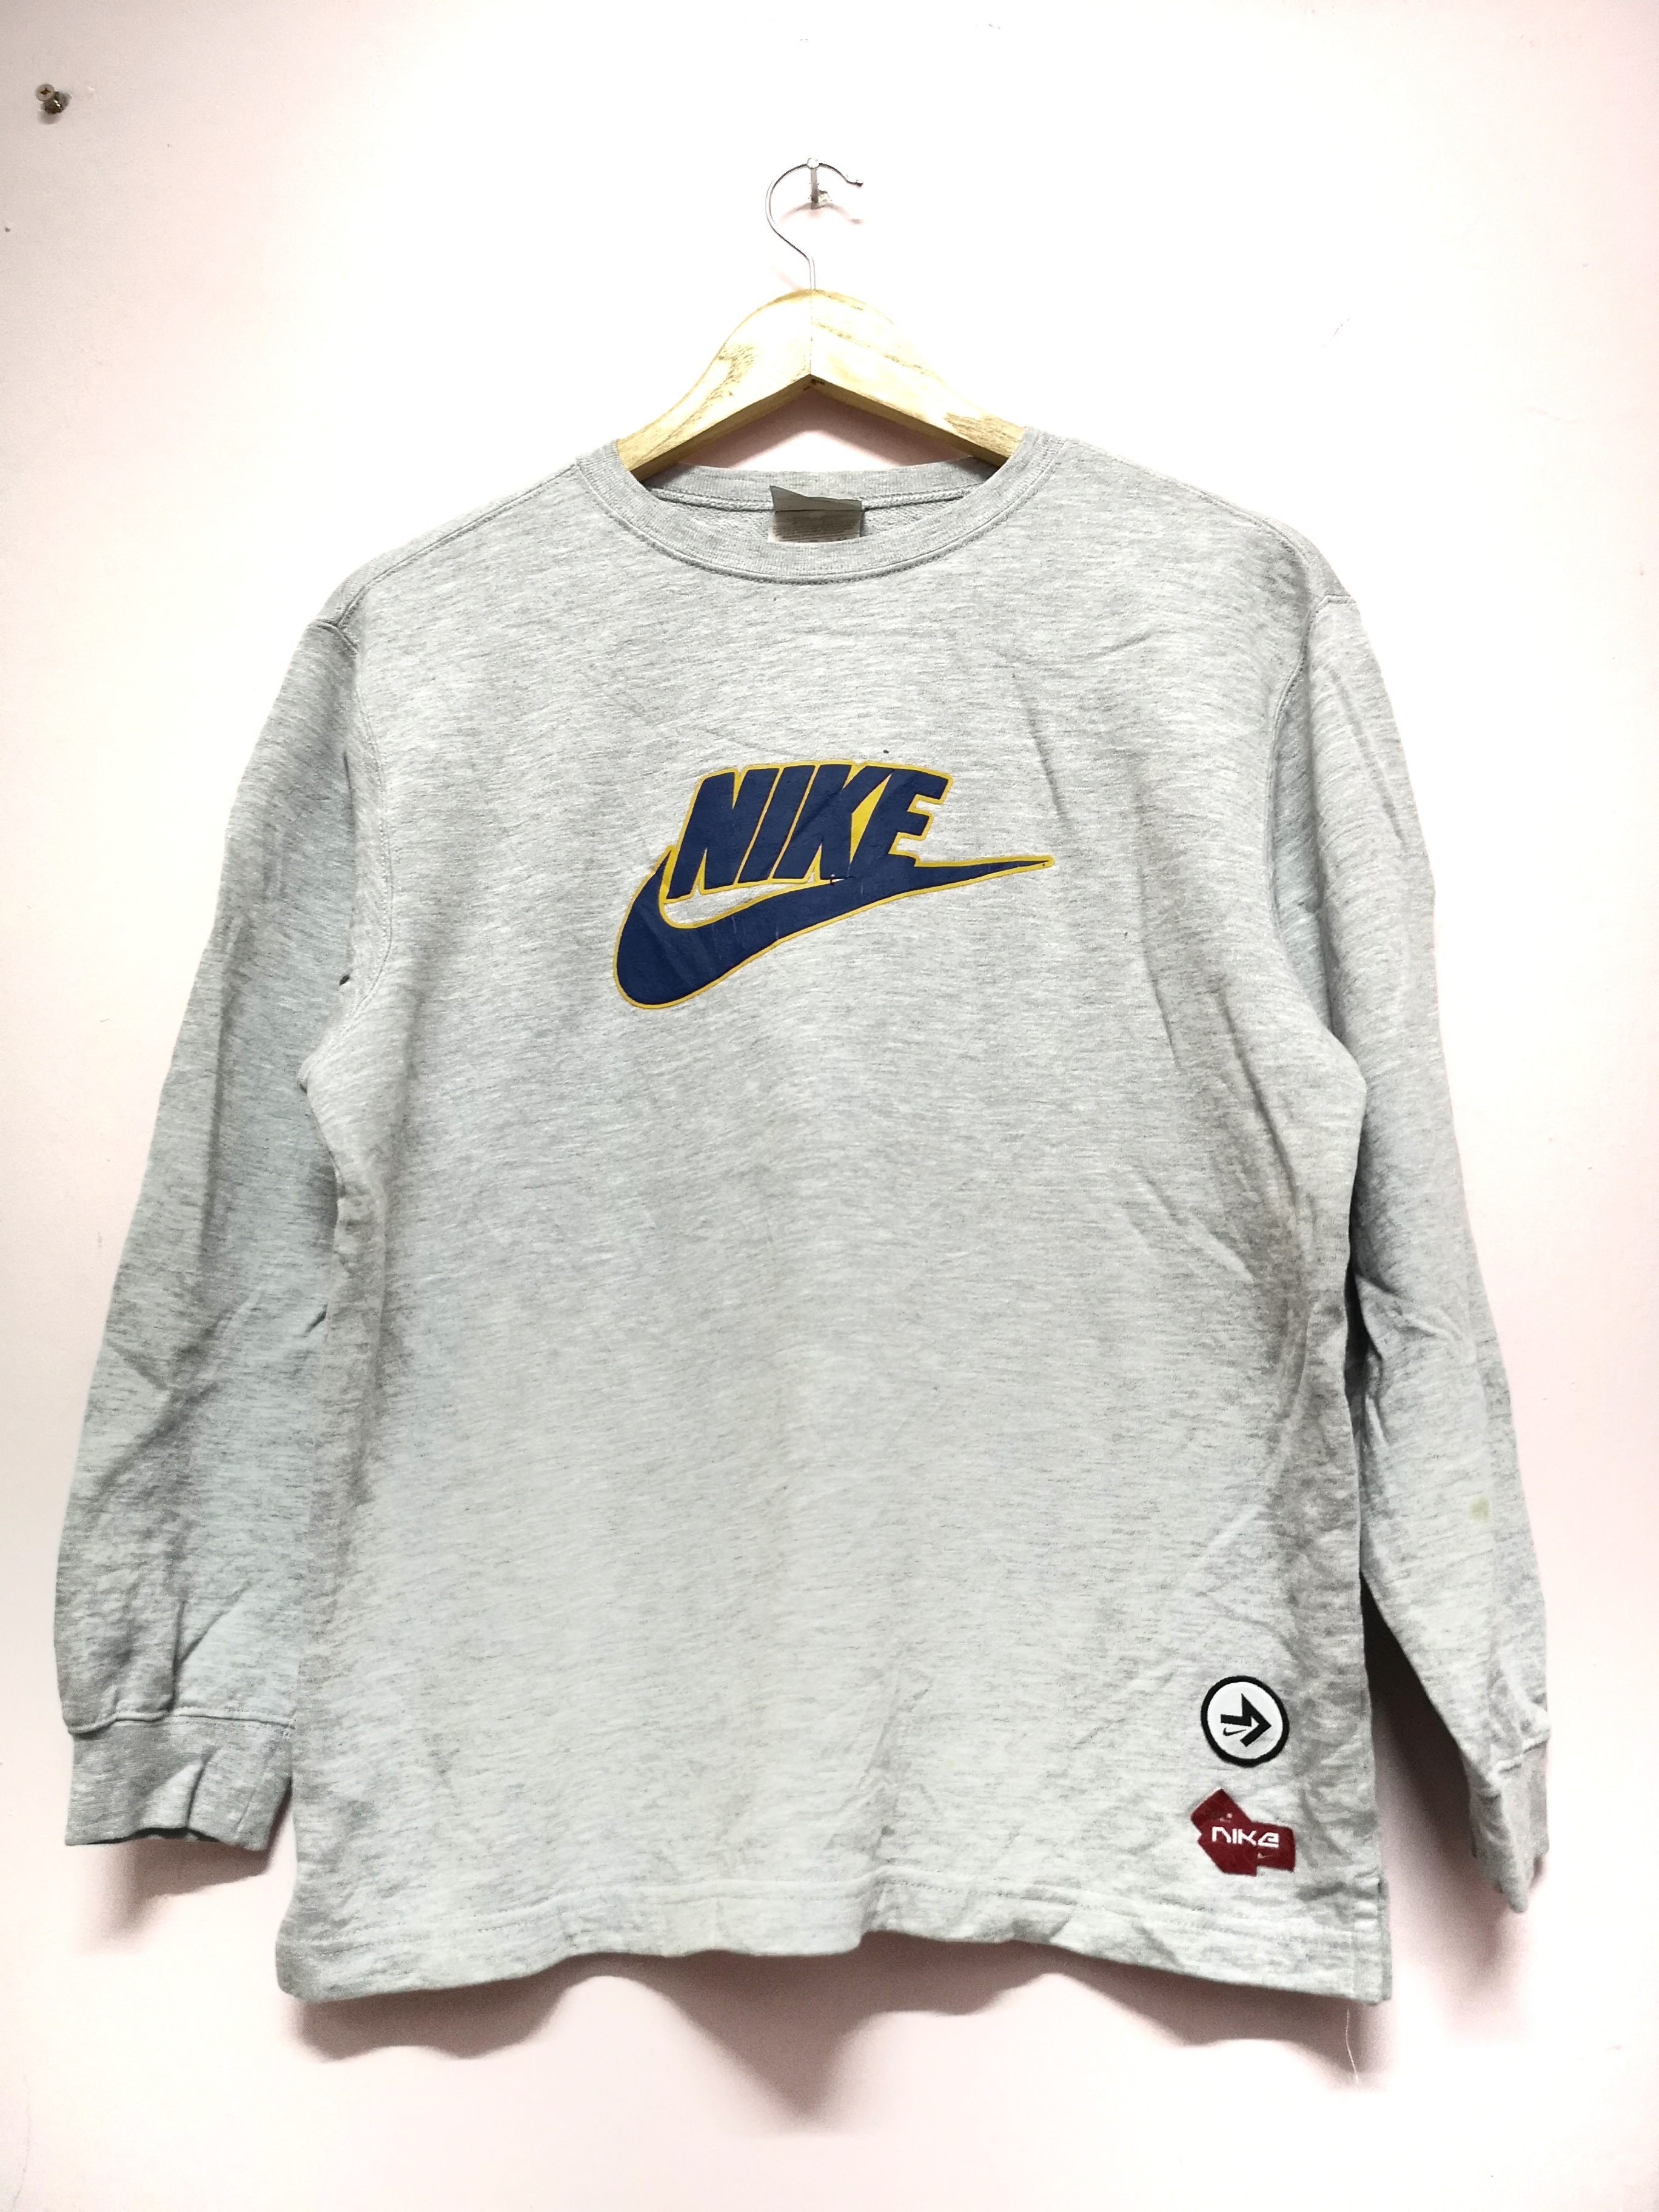 846af648 Retro Nike Crewneck Sweatshirts – EDGE Engineering and Consulting ...